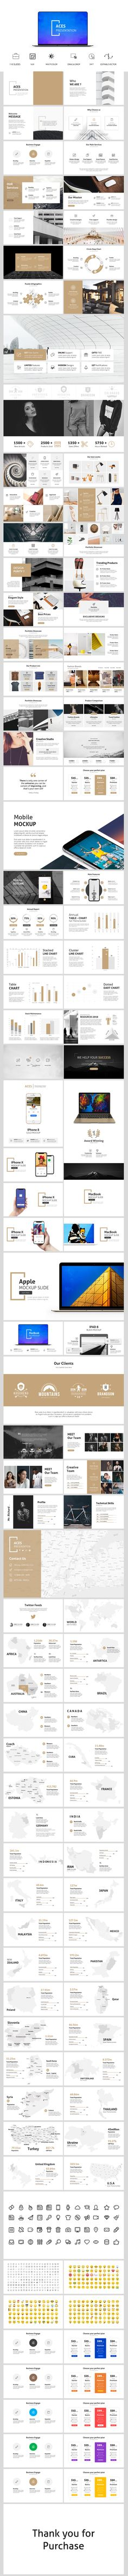 Aces - Minimal Powerpoint Template - PowerPoint Templates Presentation Templates